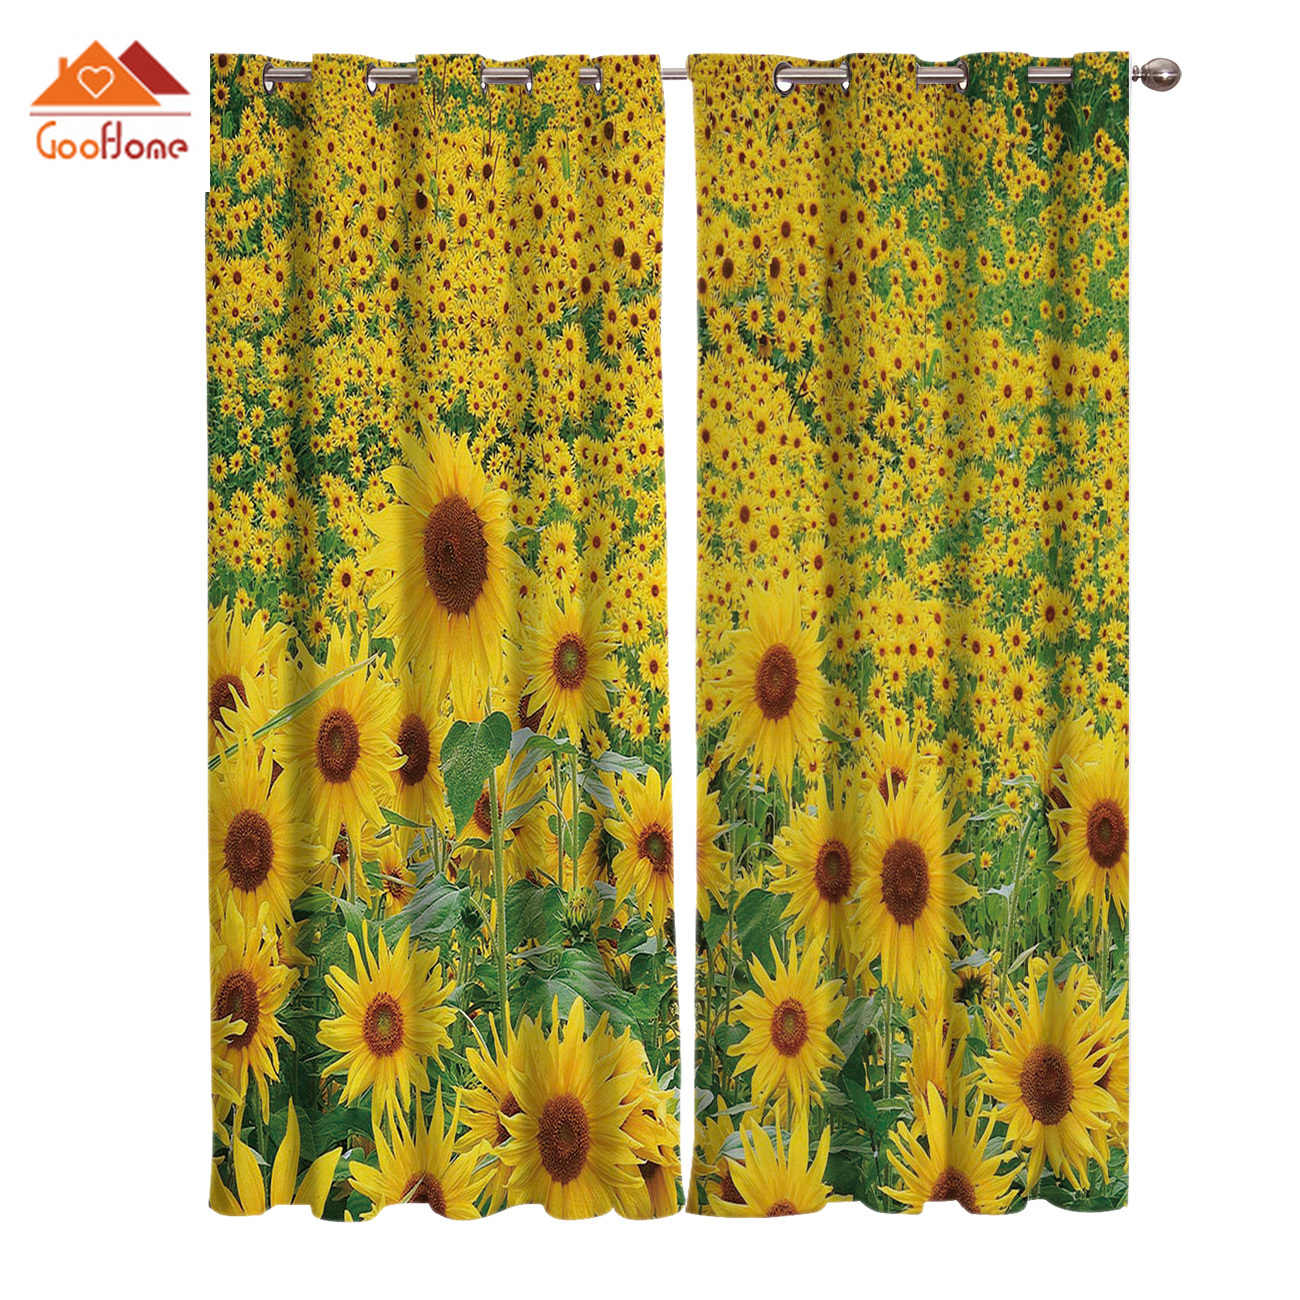 Sunflower Flower Window Curtains Living Room Outdoor Fabric Drapes Curtain Home Decor Curtains Aliexpress